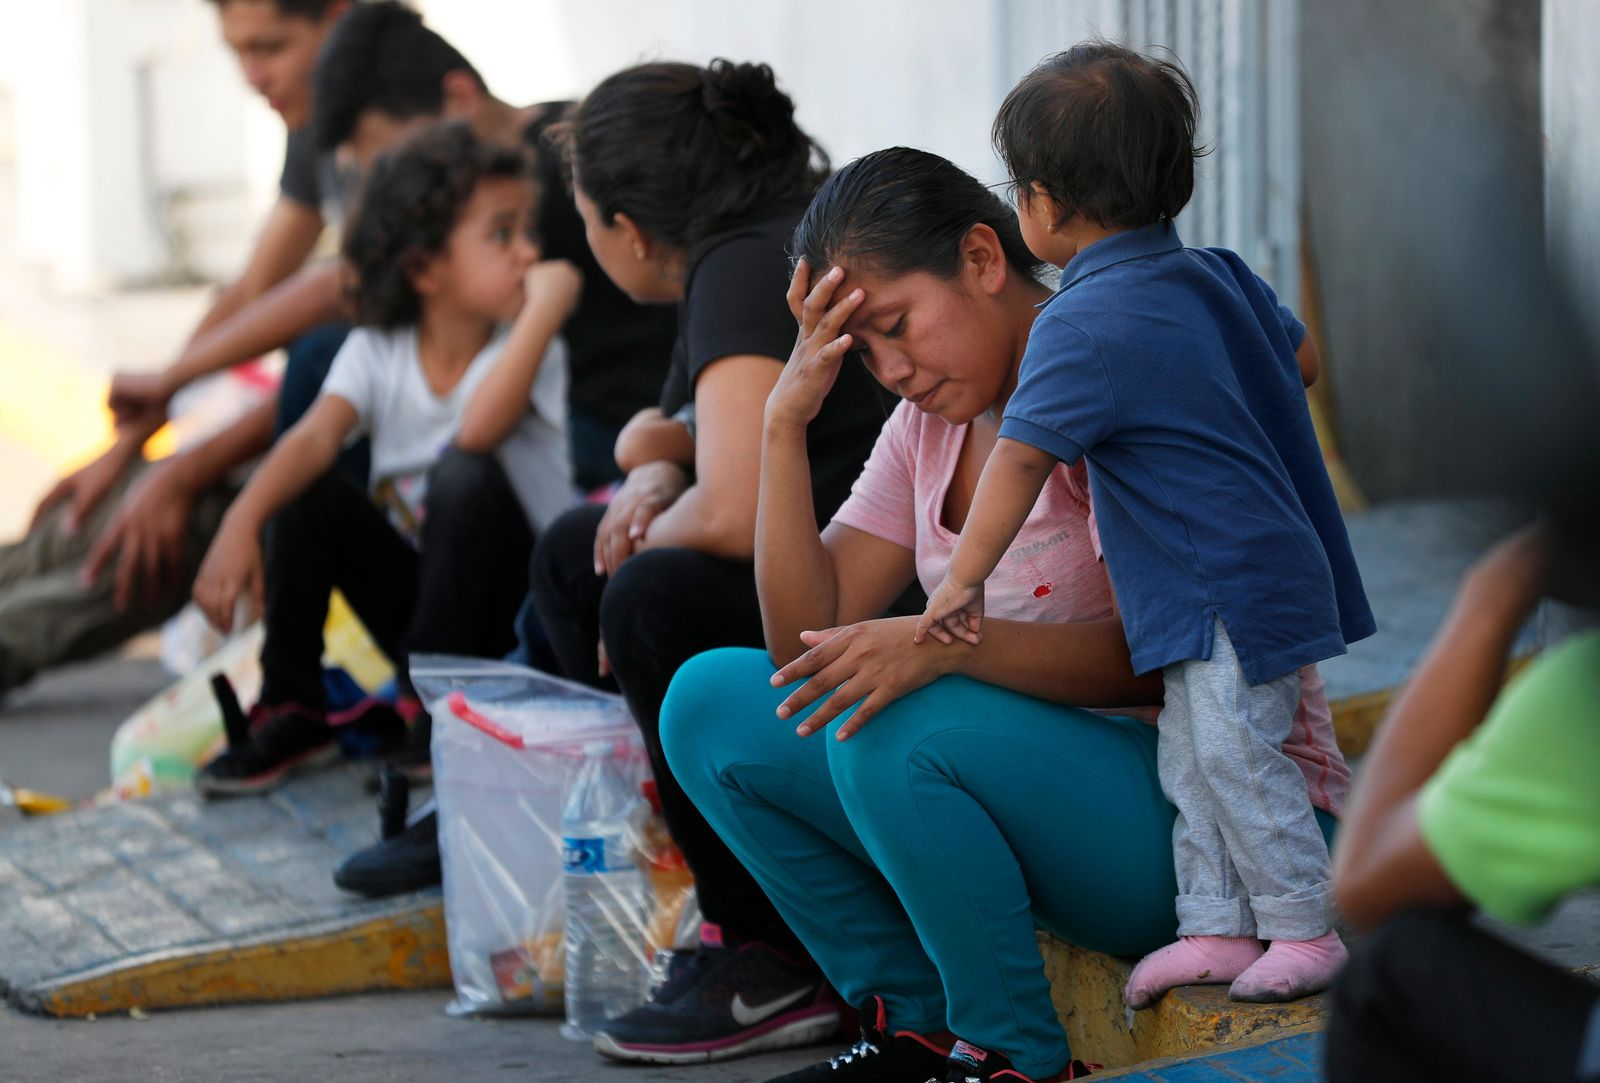 Migrants wait at an immigration center on the International Bridge 1, in Nuevo Laredo, Mexico, Tuesday, July 16, 2019. (AP Photo/Marco Ugarte)